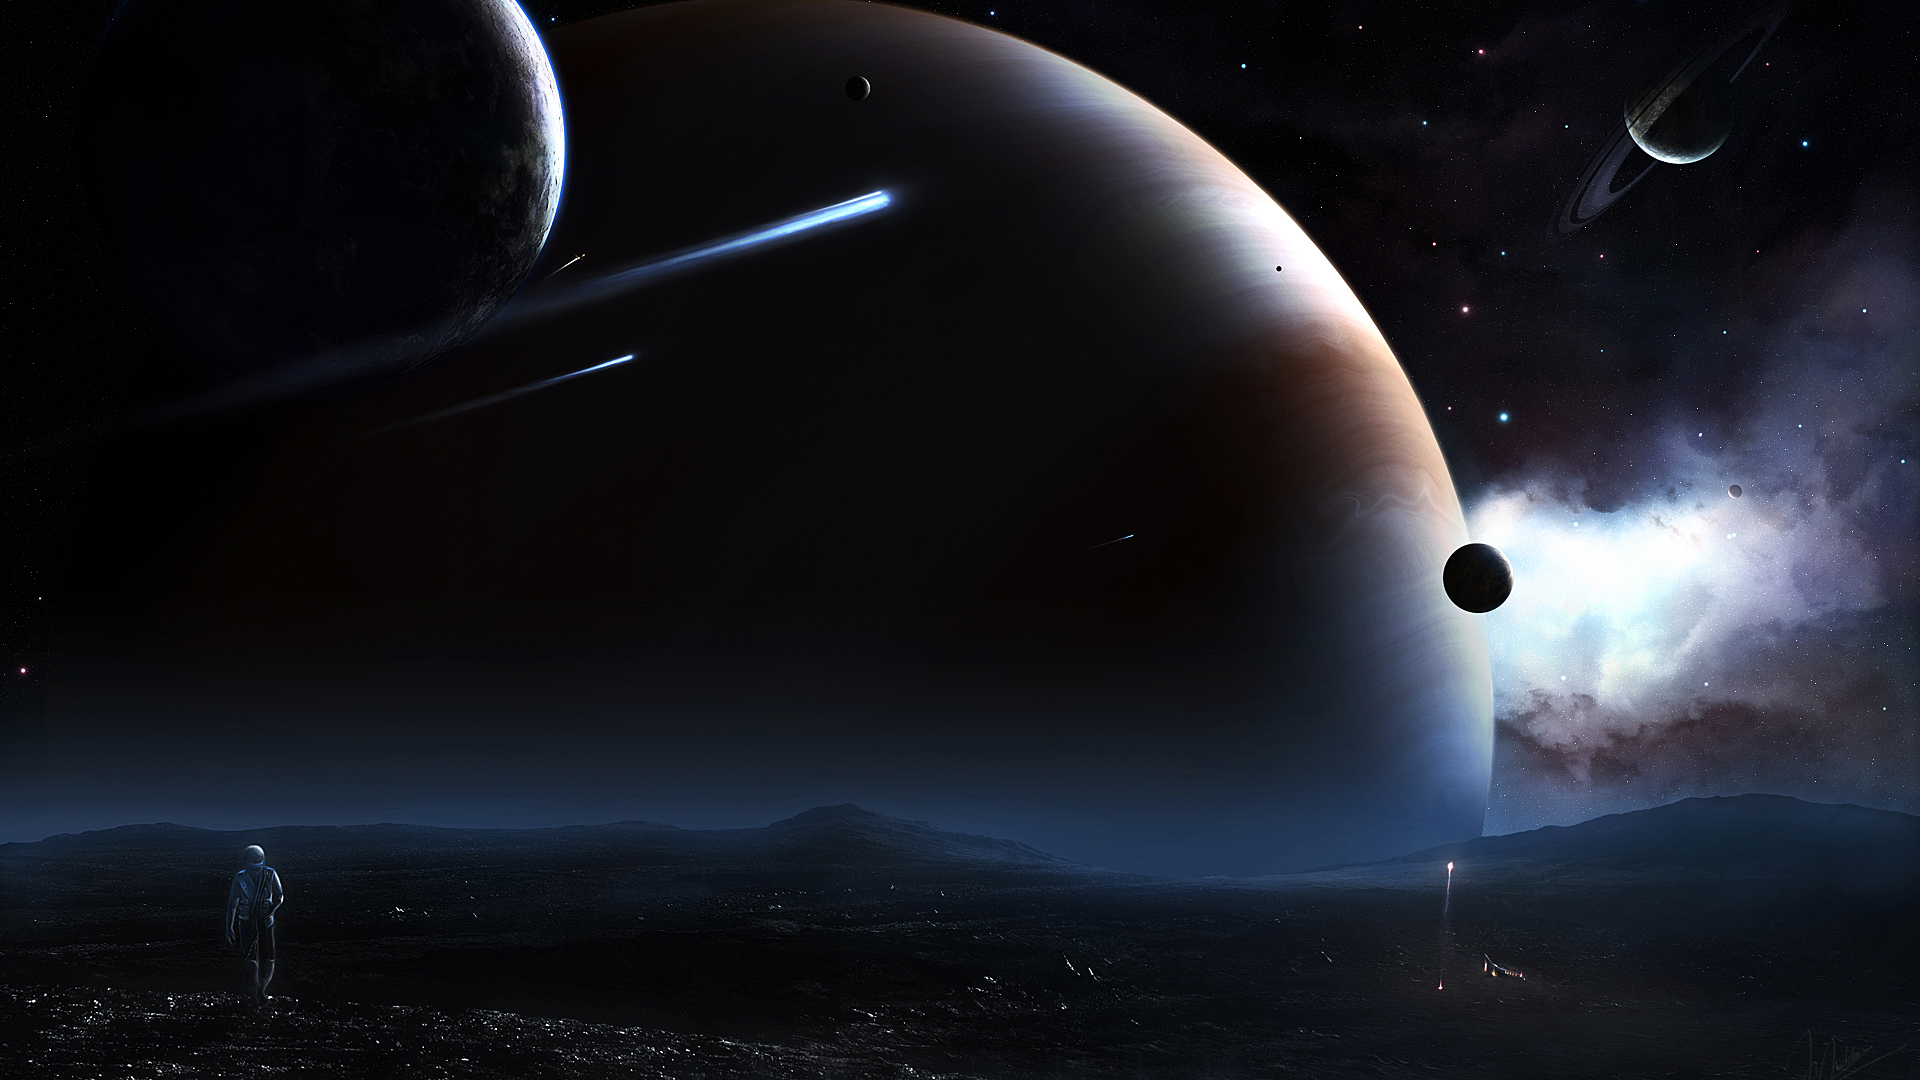 Space HD wallpaper 1920x1080 21   hebusorg   High Definition 1920x1080